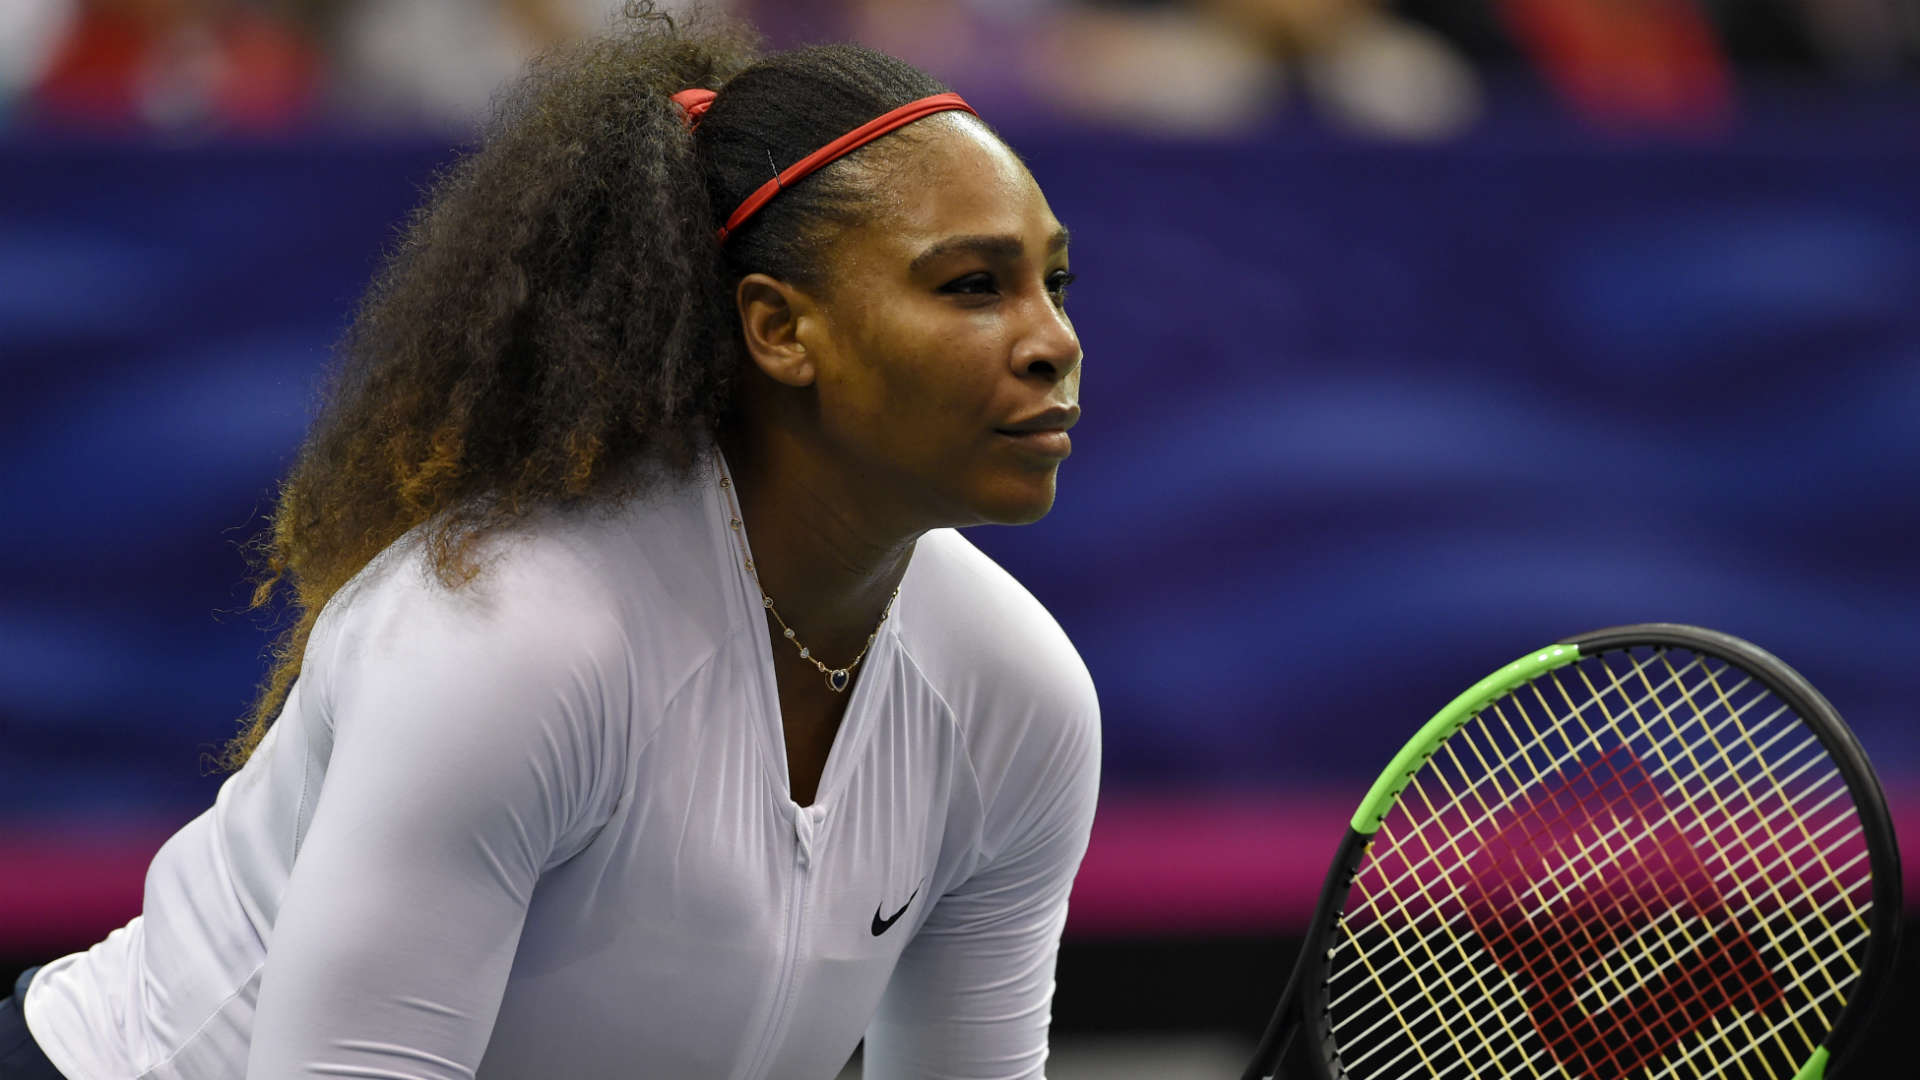 Serena-Williams-030518-USNews-Getty-FTR